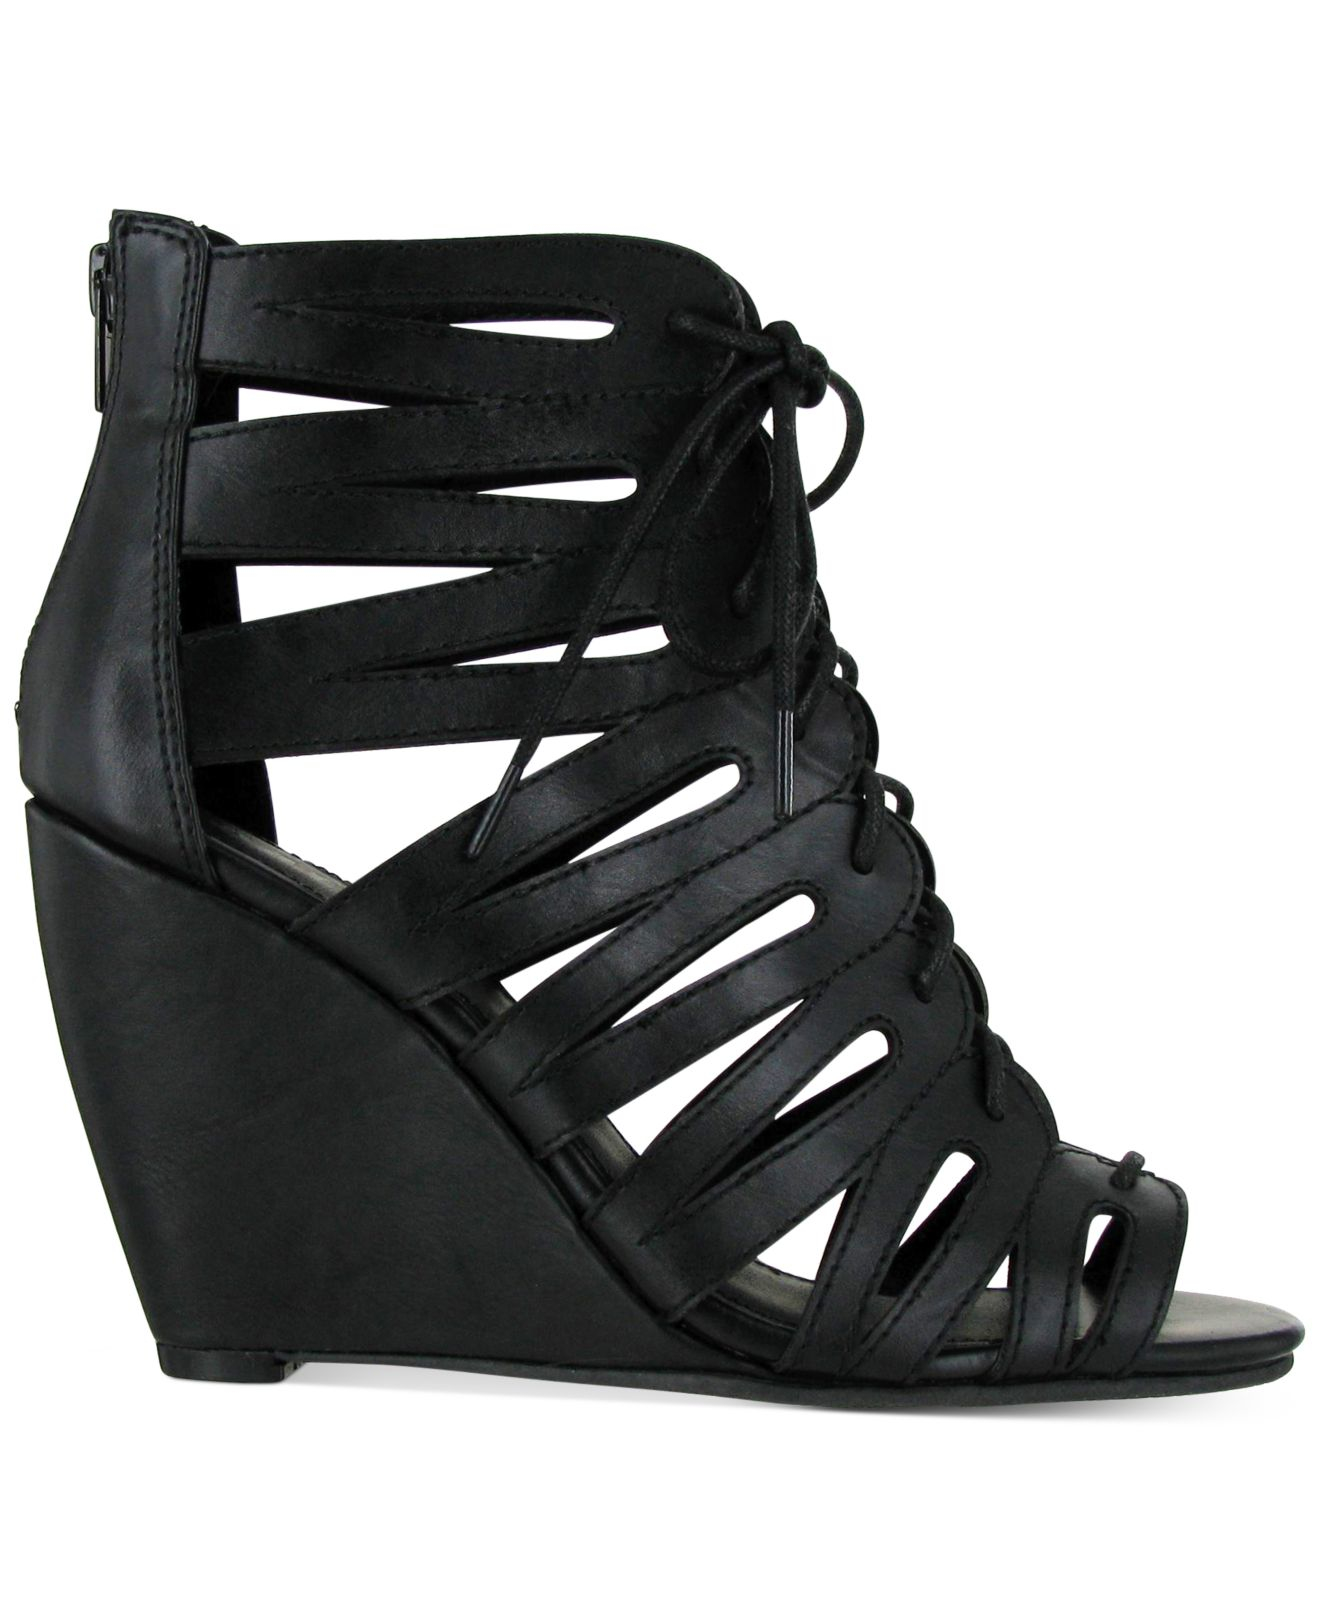 Mia Issy Lace Up Wedge Sandals In Black Lyst